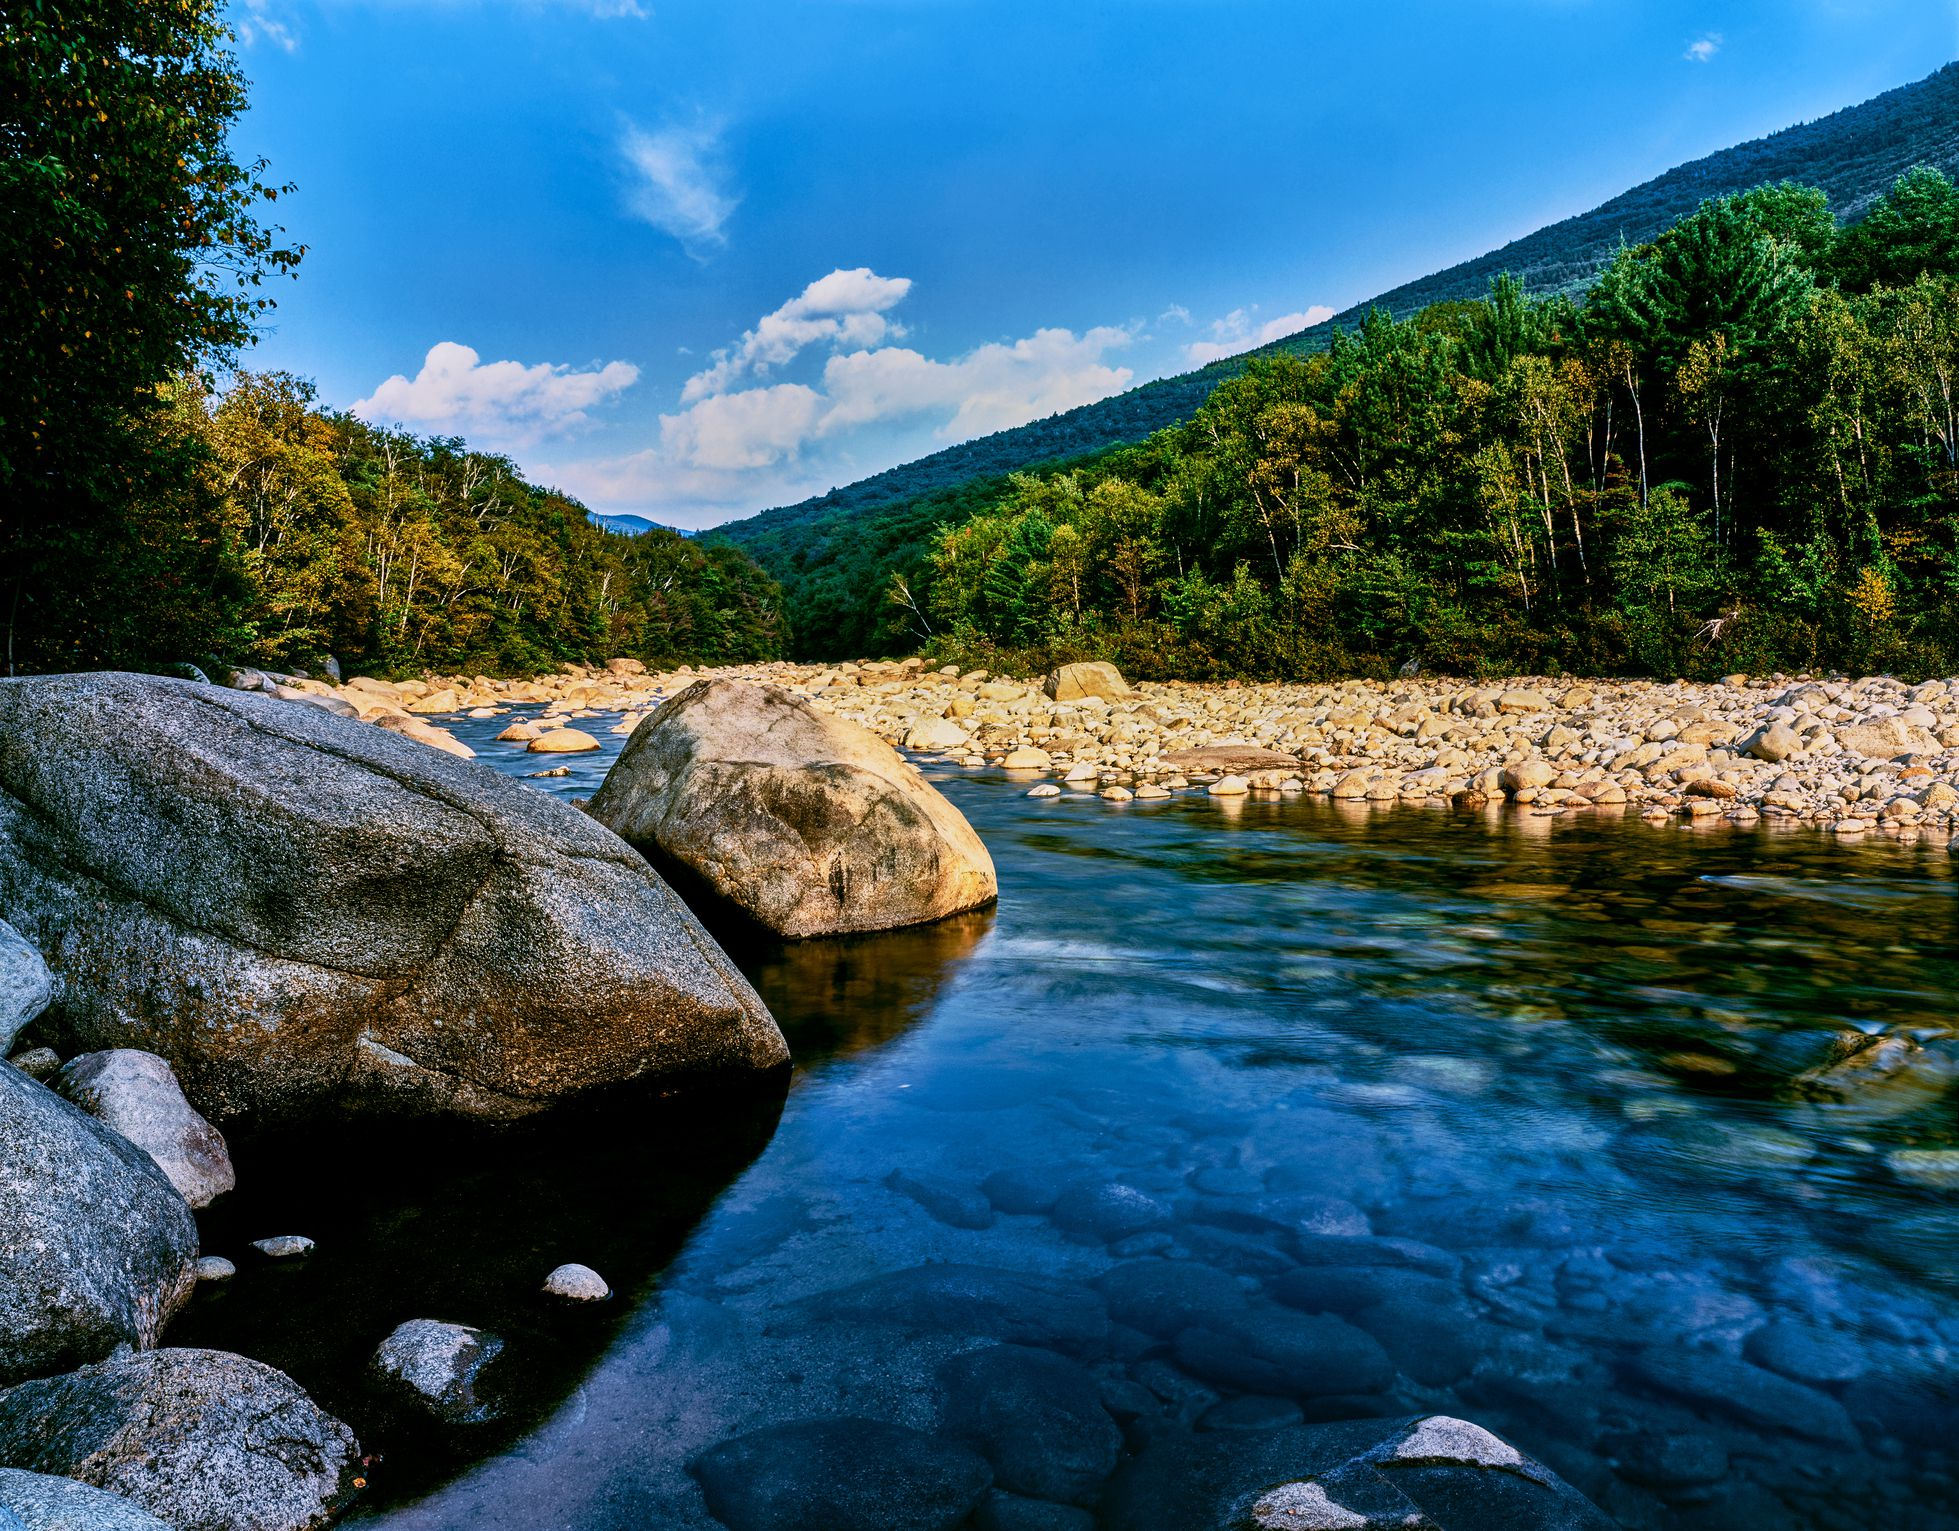 Swift River, Kancamagus Highway, White Mountain National Forest, New Hampshire